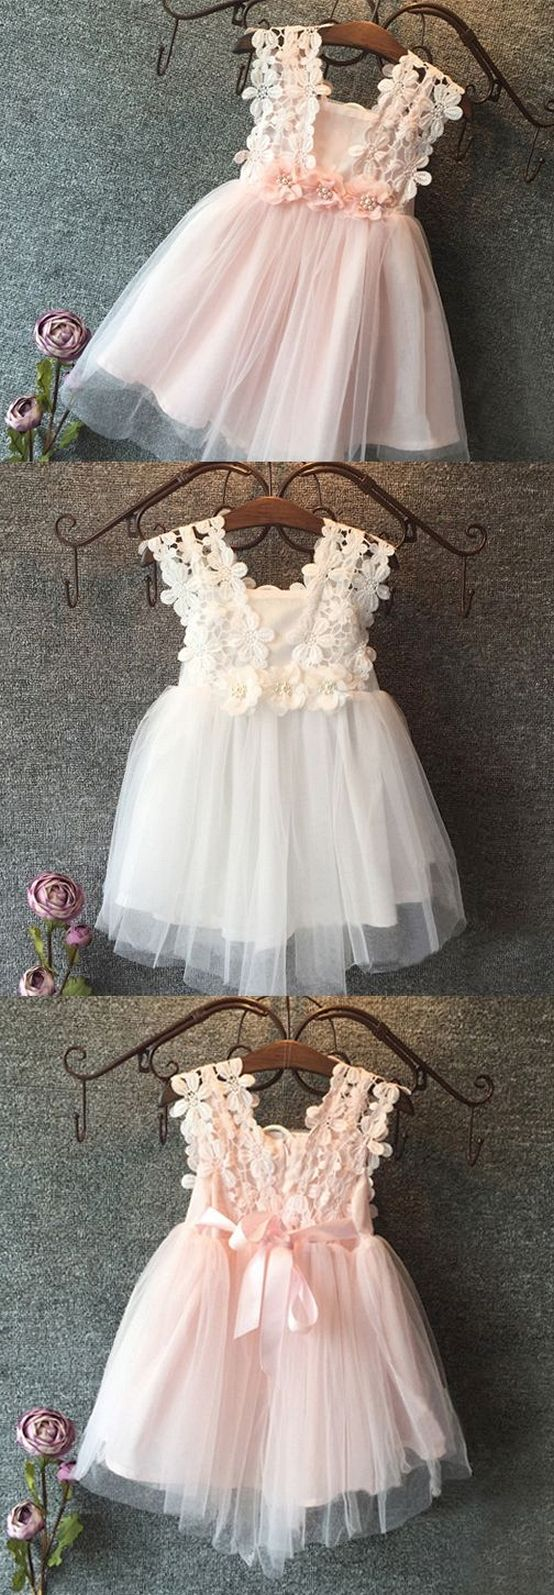 130 Sweet Flower Girl Dresses Inspirations https://bridalore.com/2017/07/02/130-sweet-flower-girl-dresses-inspirations/